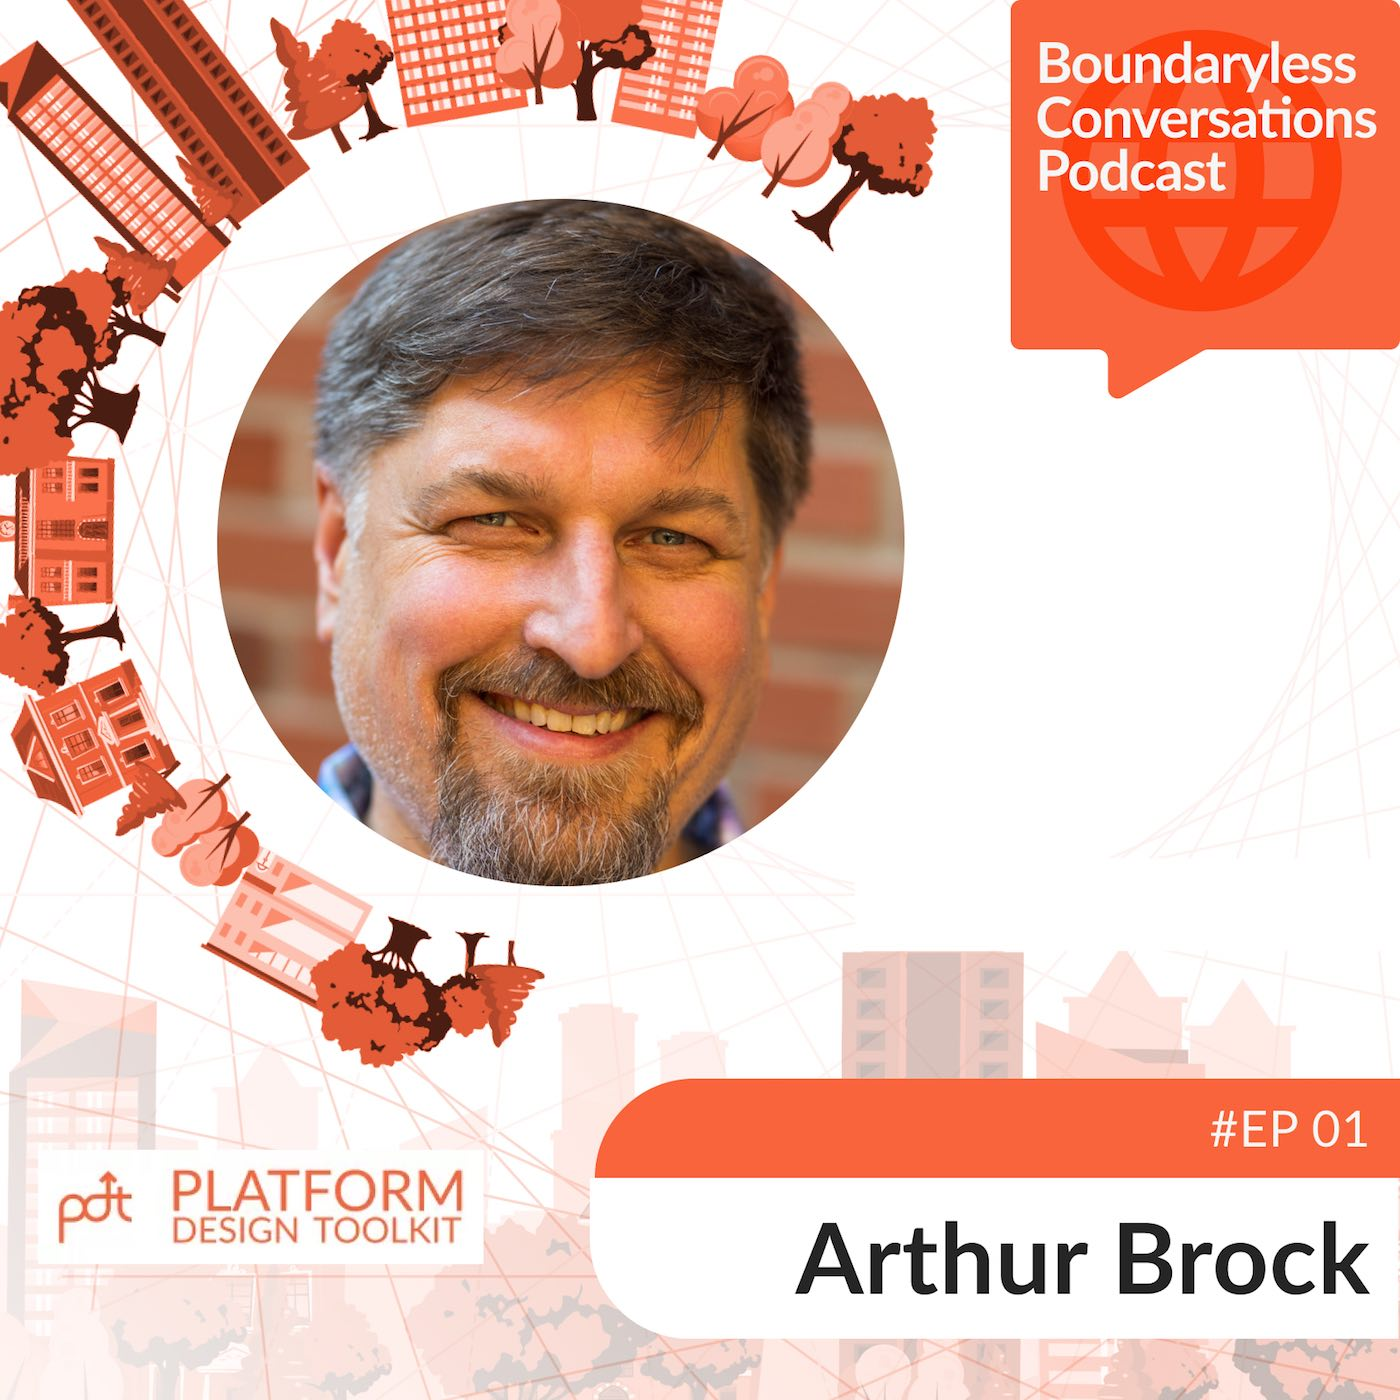 Ep. 01 Arthur Brock - Rewiring the technology to rewire the way we organise